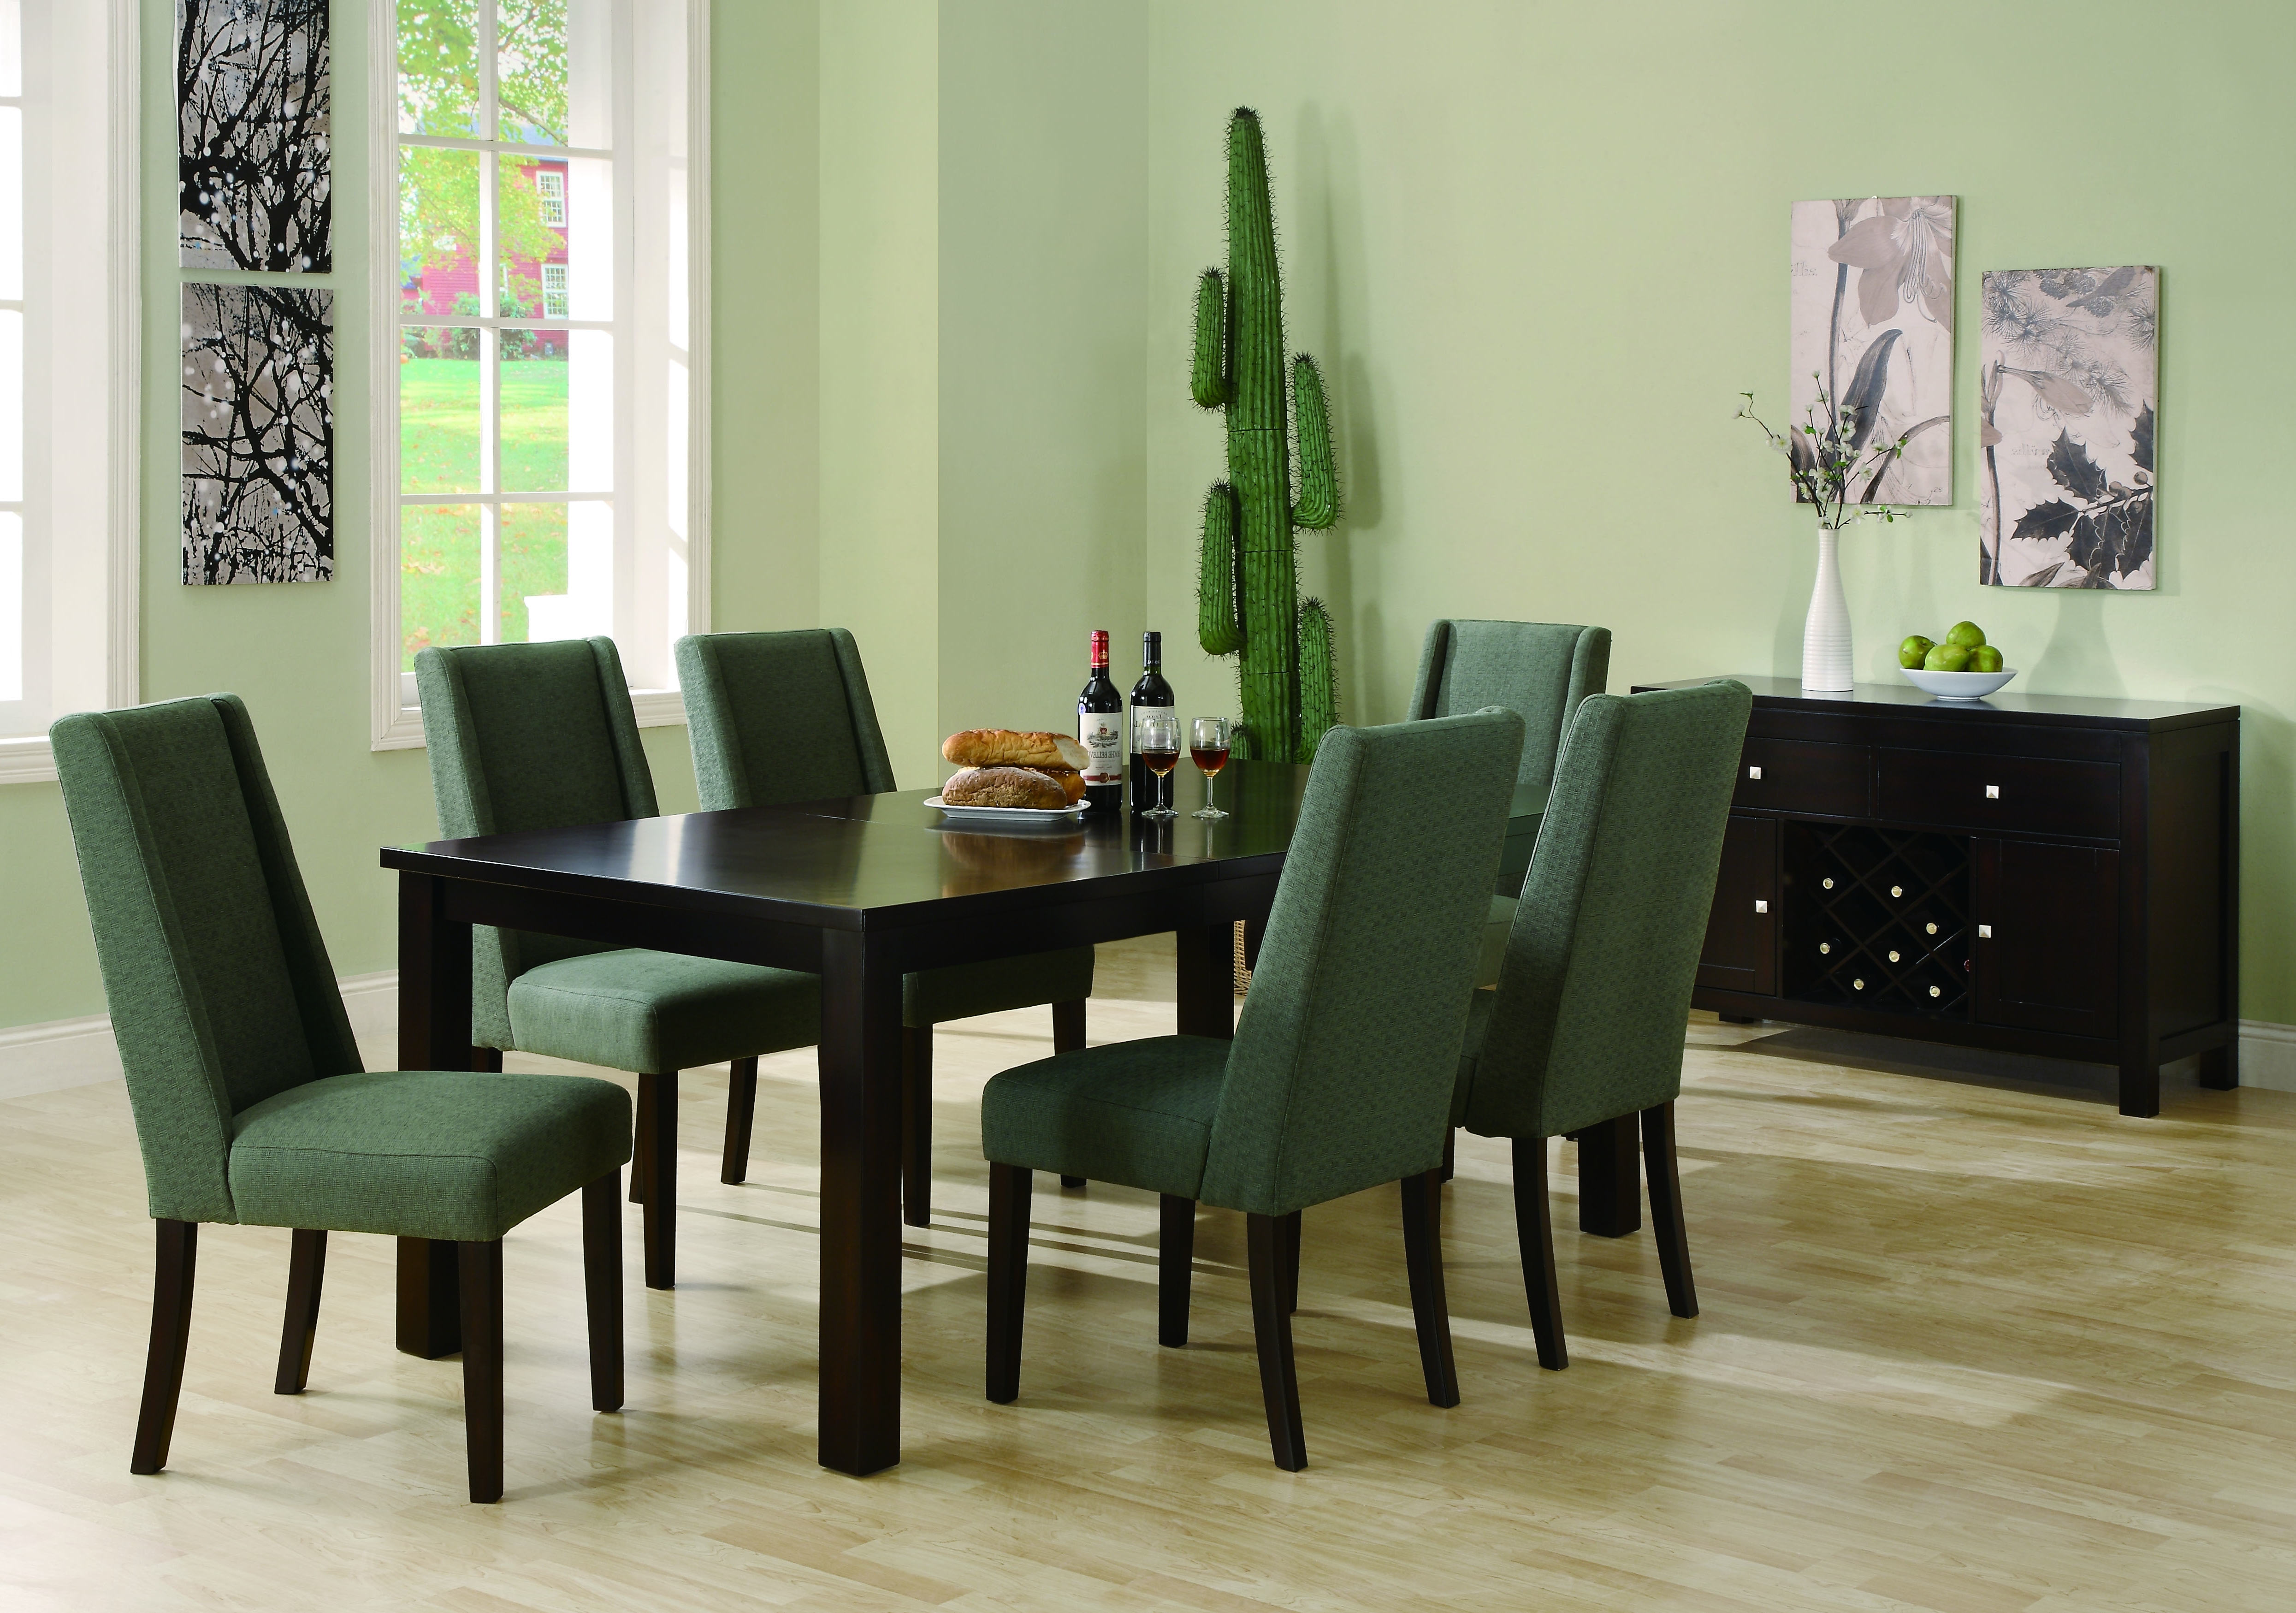 Green Dining Tables Within Fashionable Green Dining Table And Chairs Stocktonandco Industrial Style Dining (View 12 of 25)